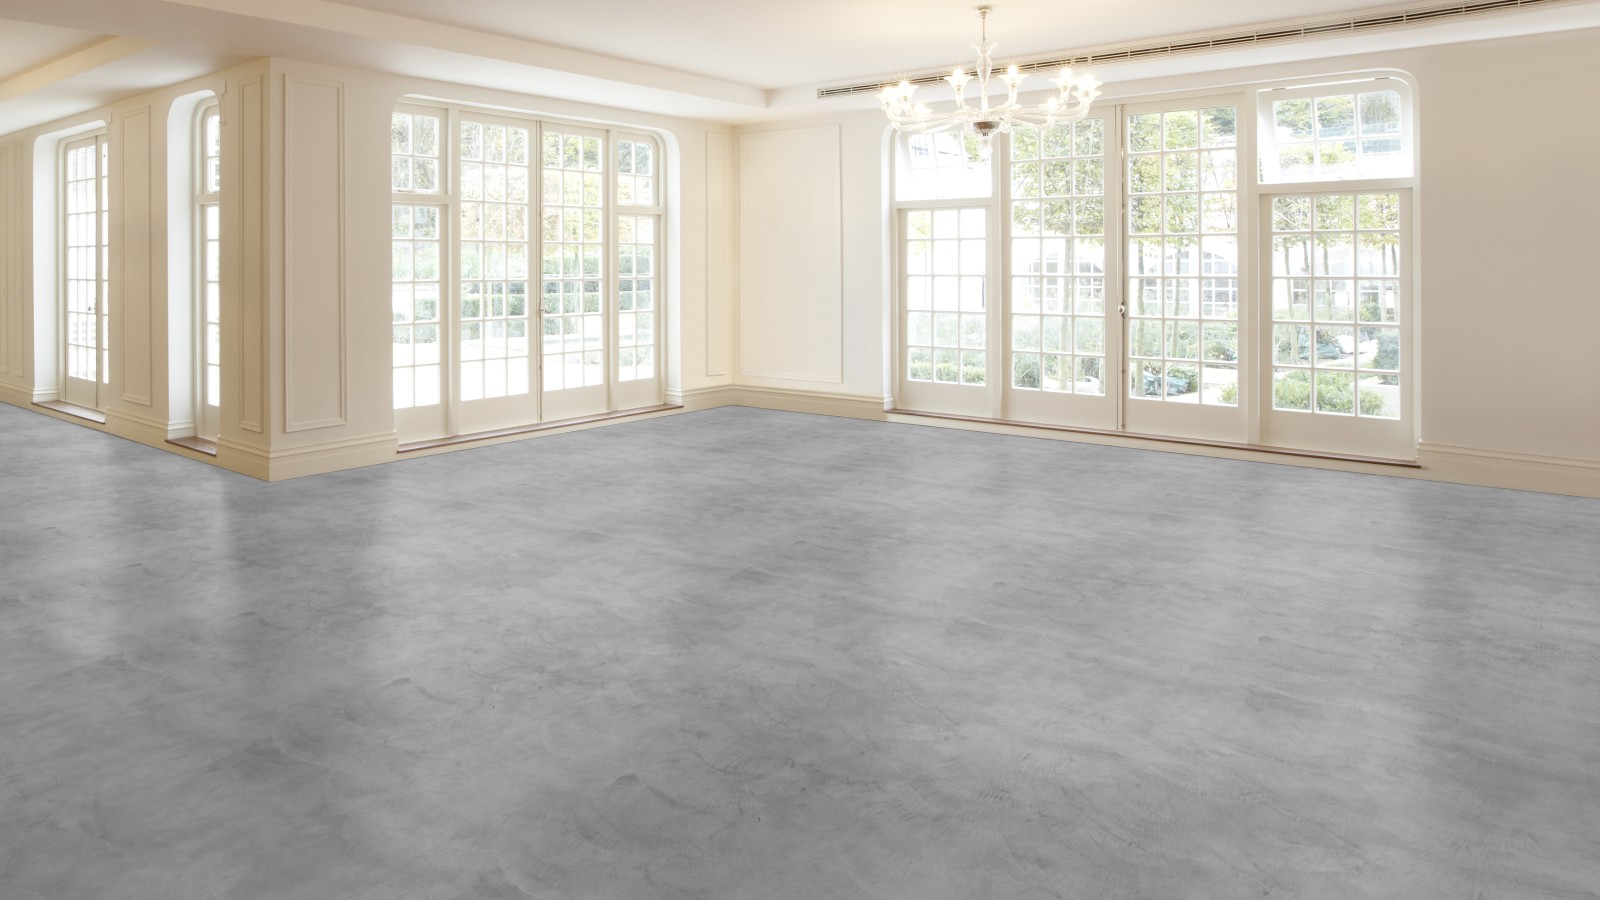 beton cire vloer woonkamer lactatefo for